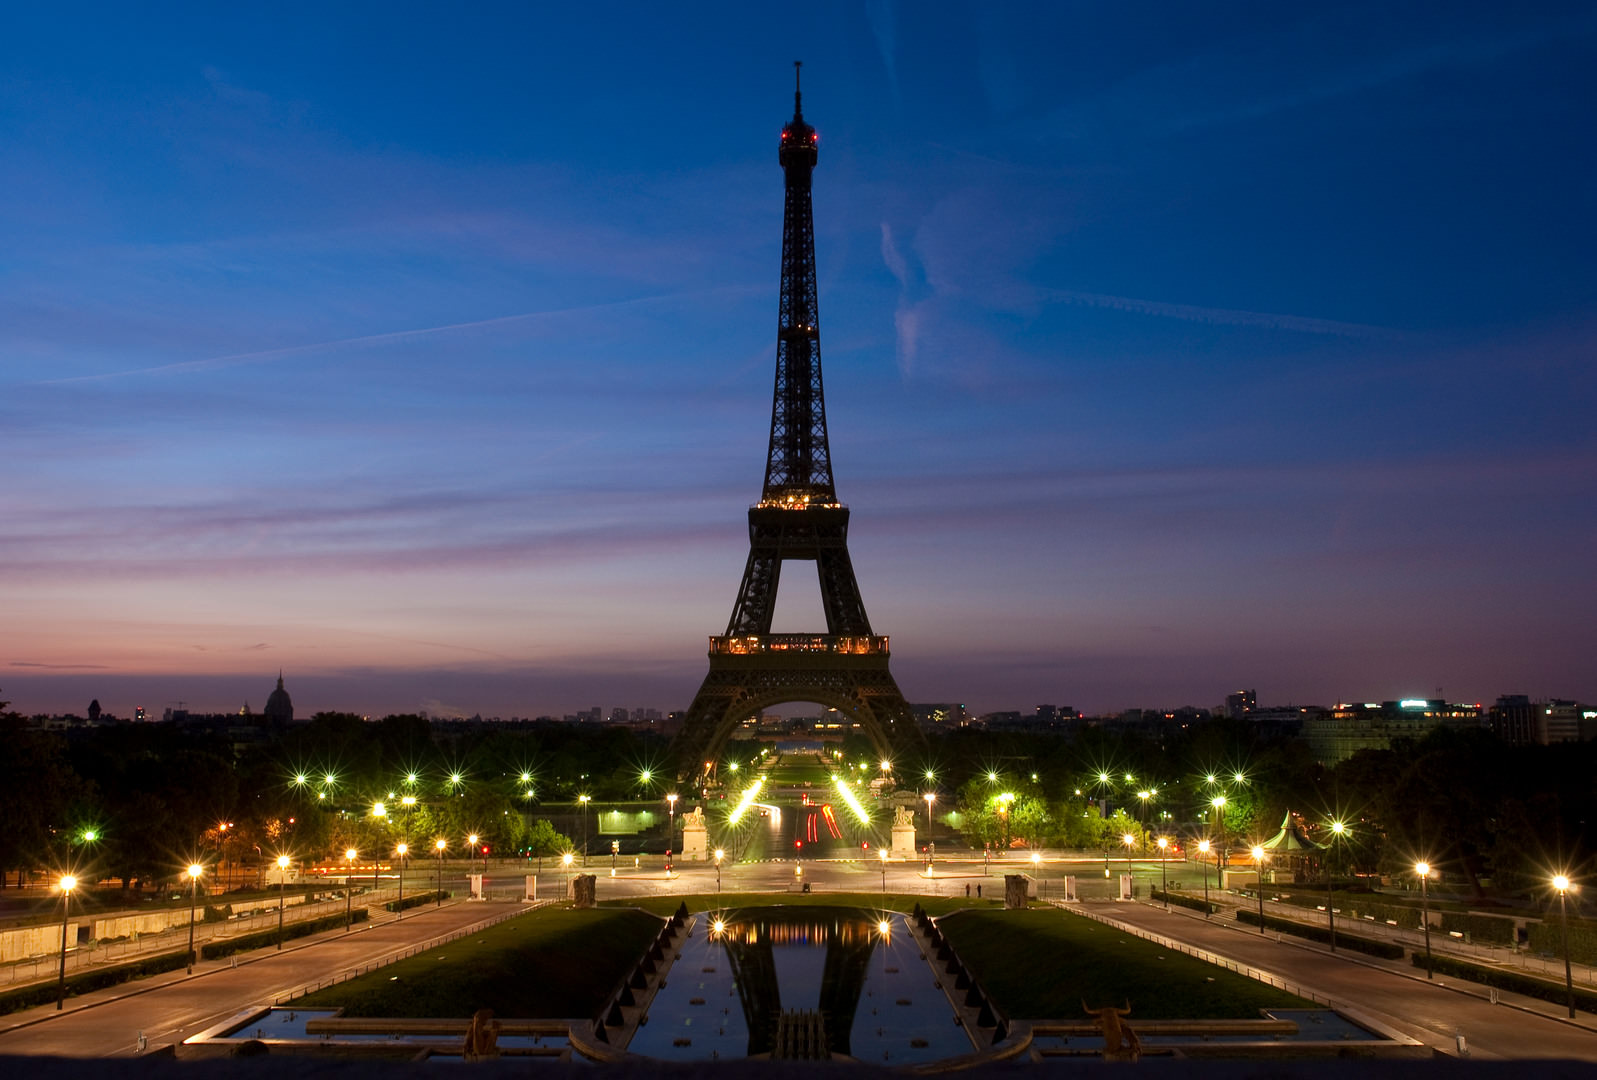 15+ eiffel tower wallpapers, backgrounds, images | freecreatives